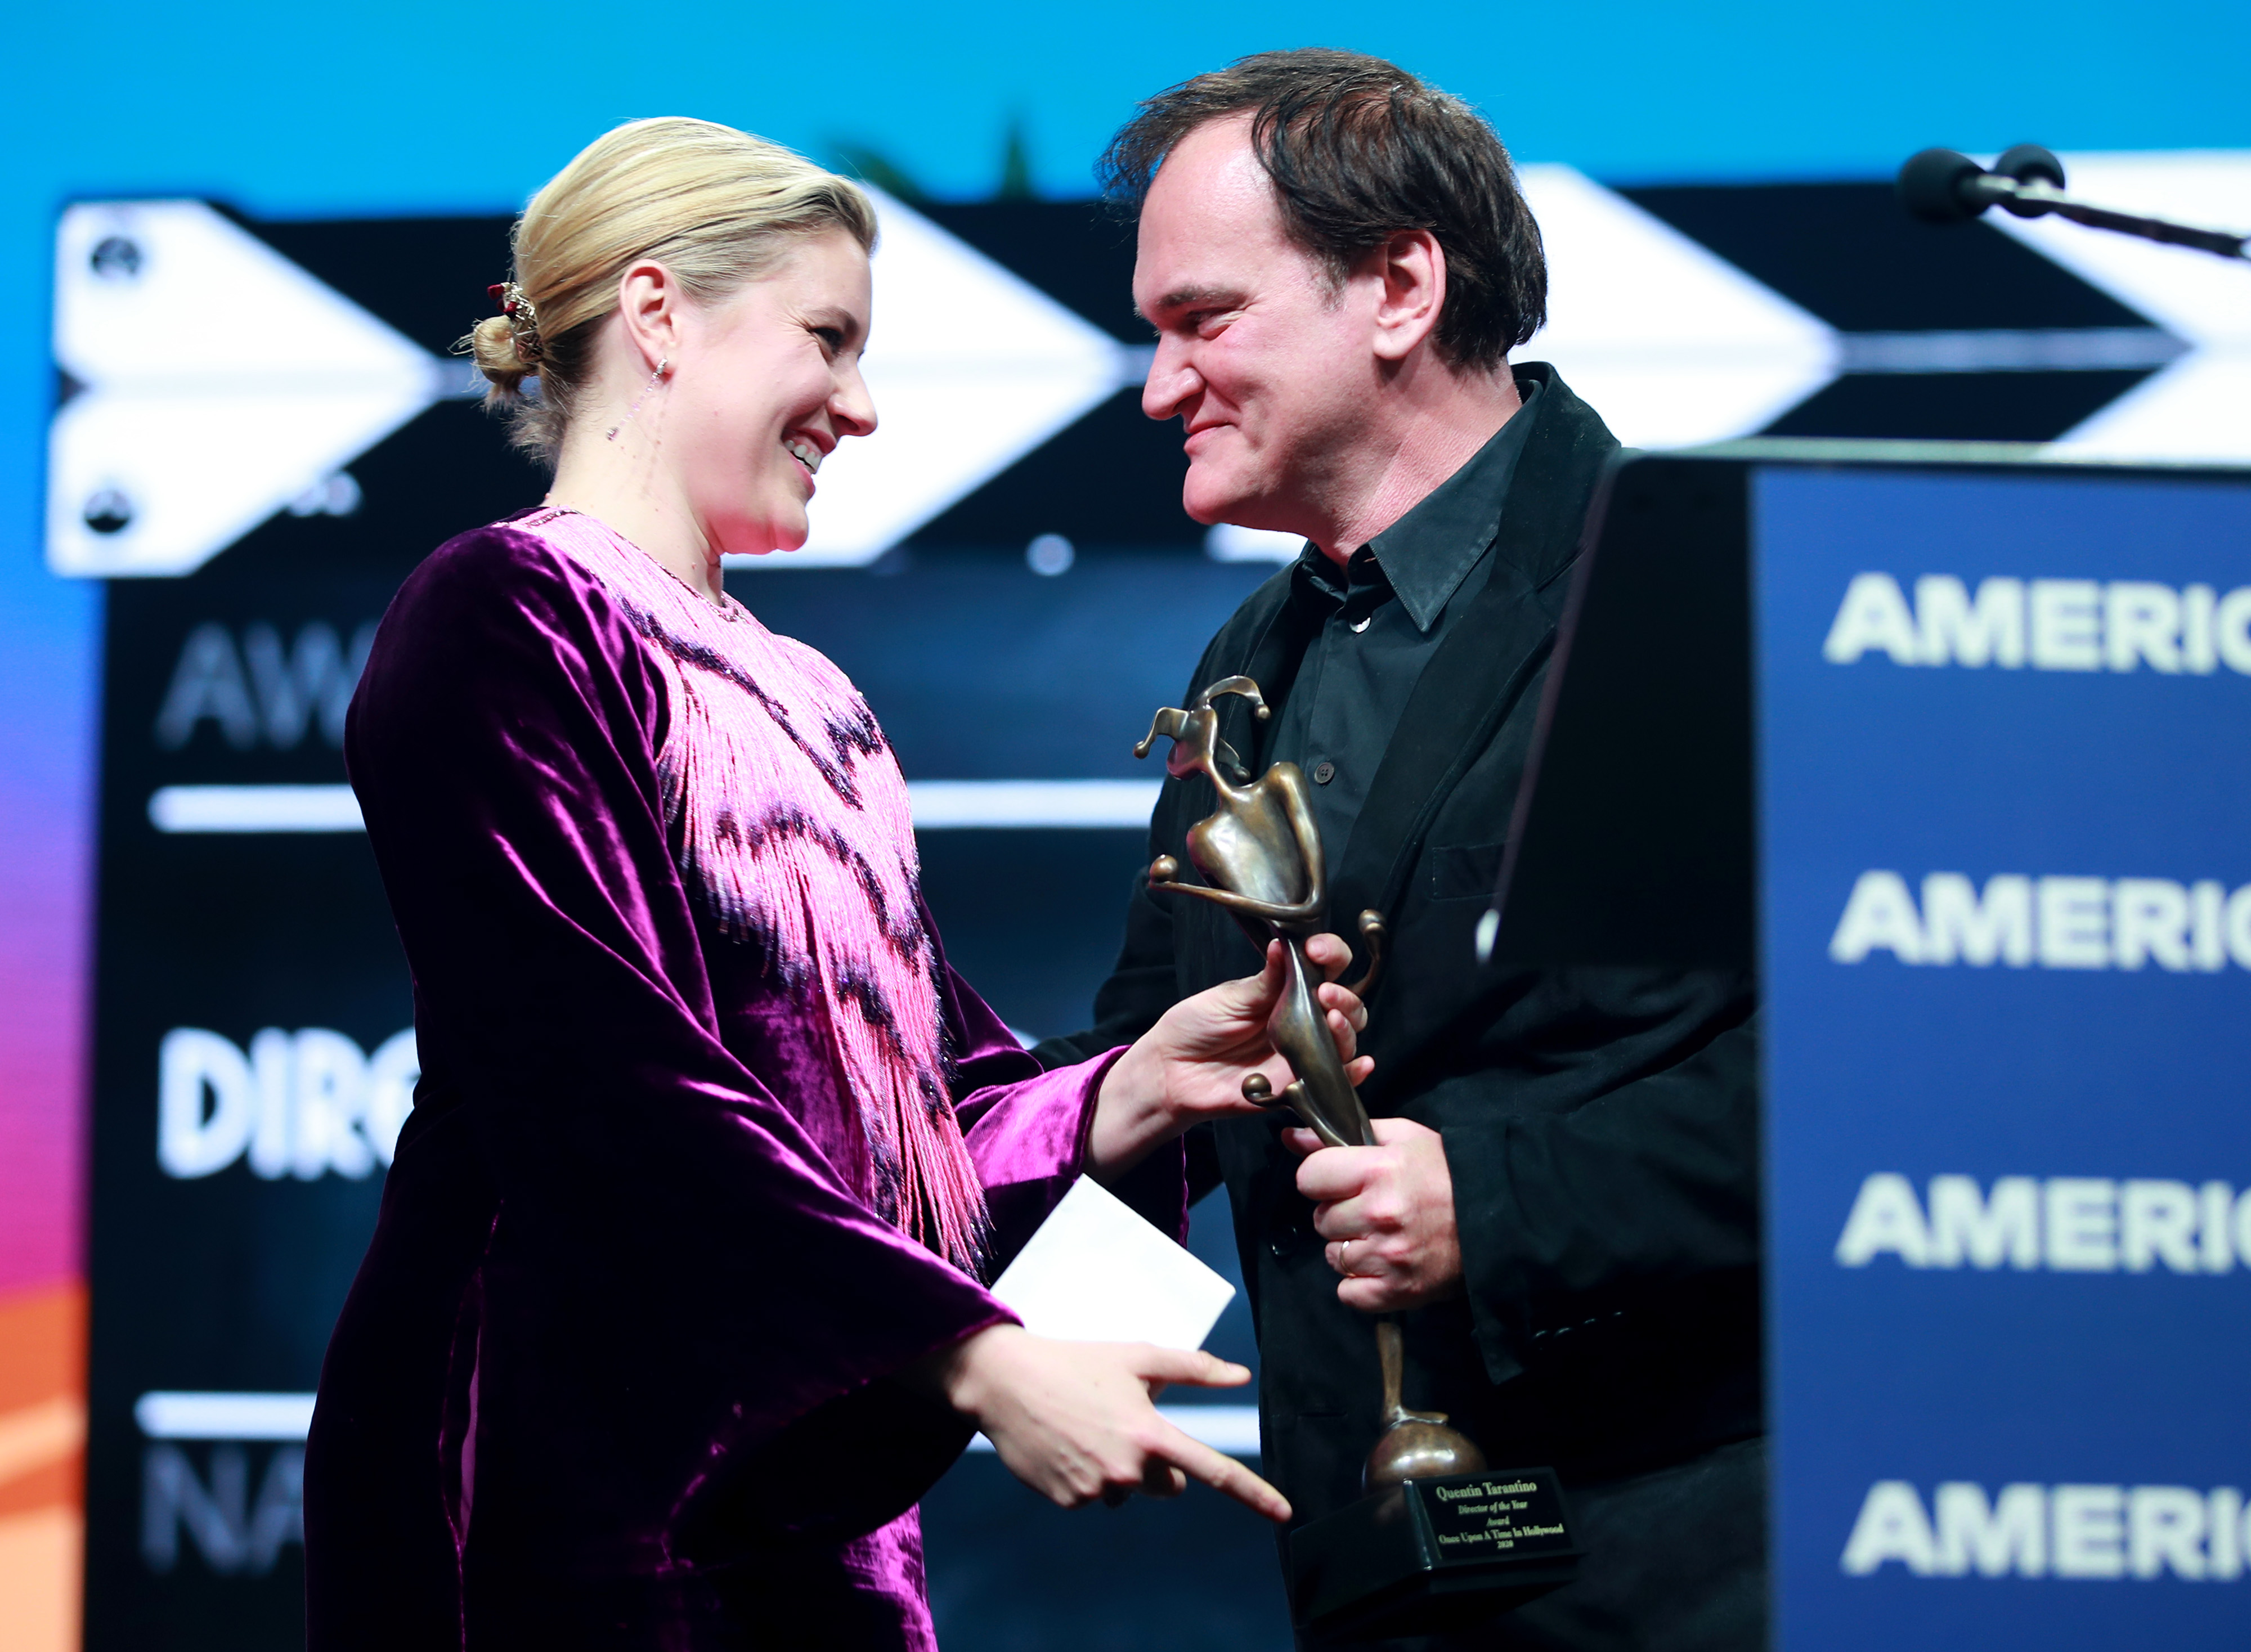 Greta Gerwig Brings Quentin Tarantino to Tears With Emotional Tribute at Palm Springs Gala